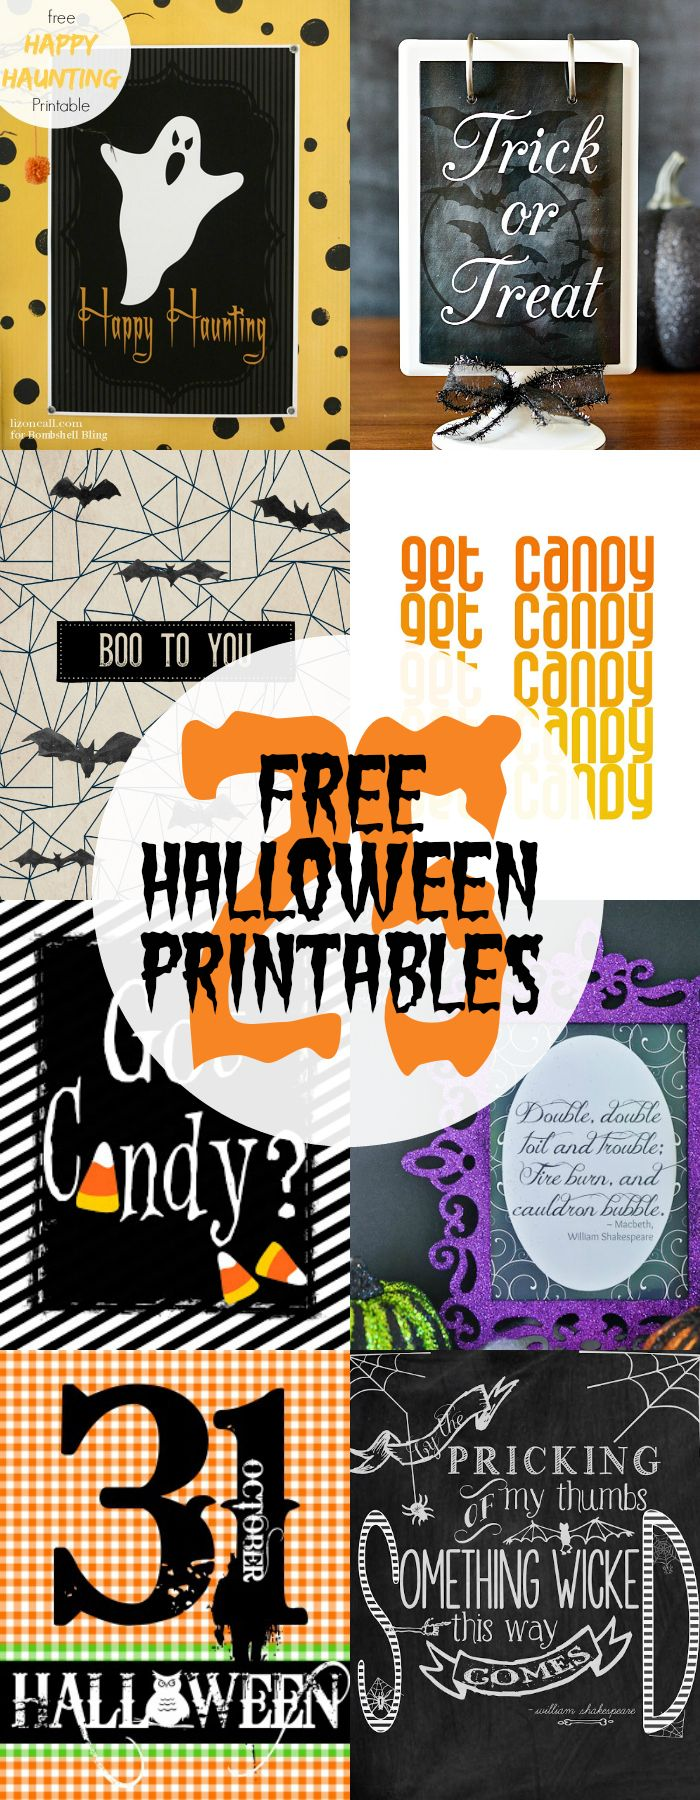 Use the 25 free Halloween printables to decorate your home for Halloween in a hurry.